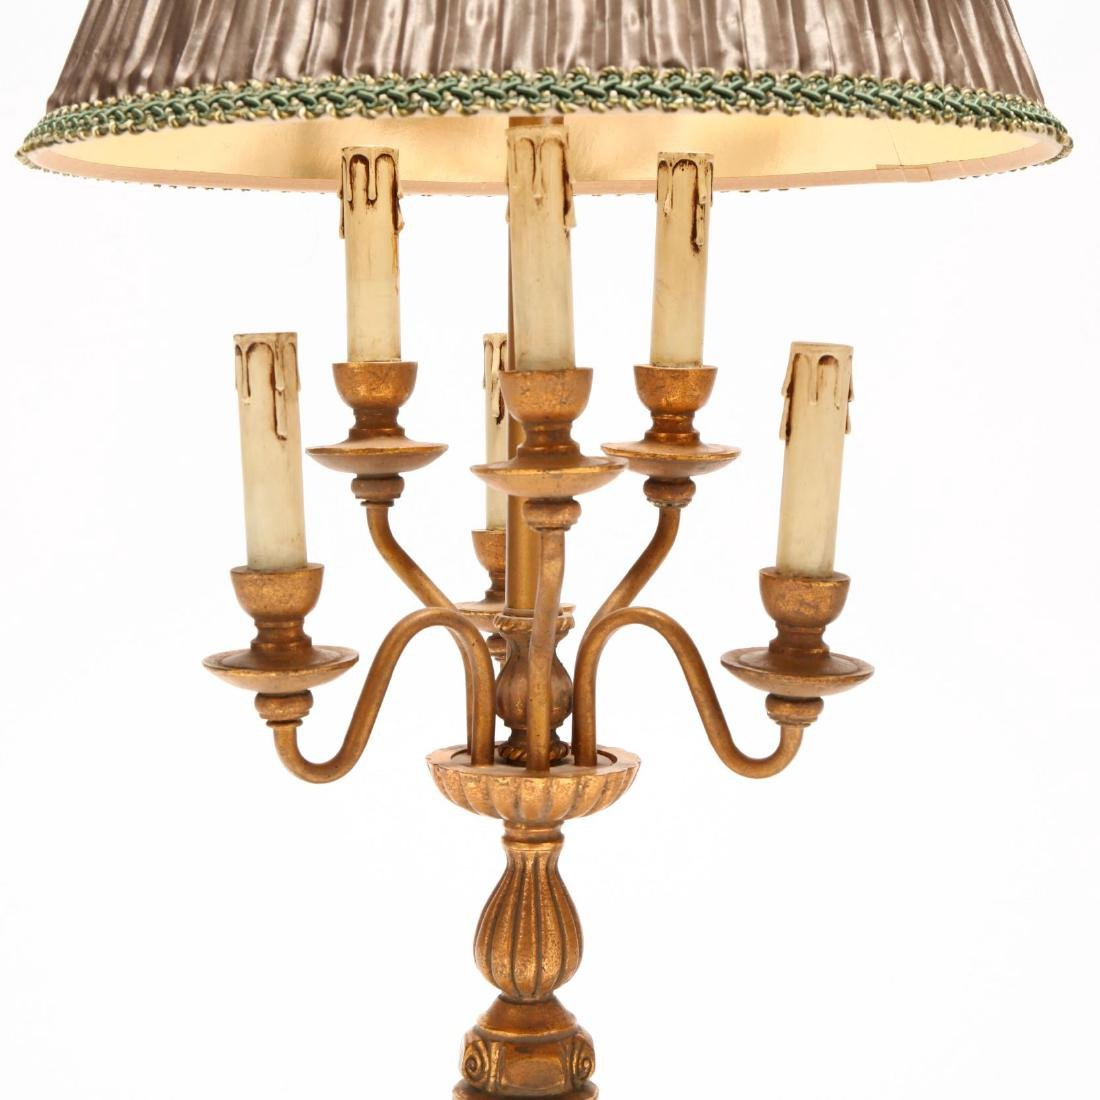 Pair of Italianate Style Candelabra Table Lamps - 3